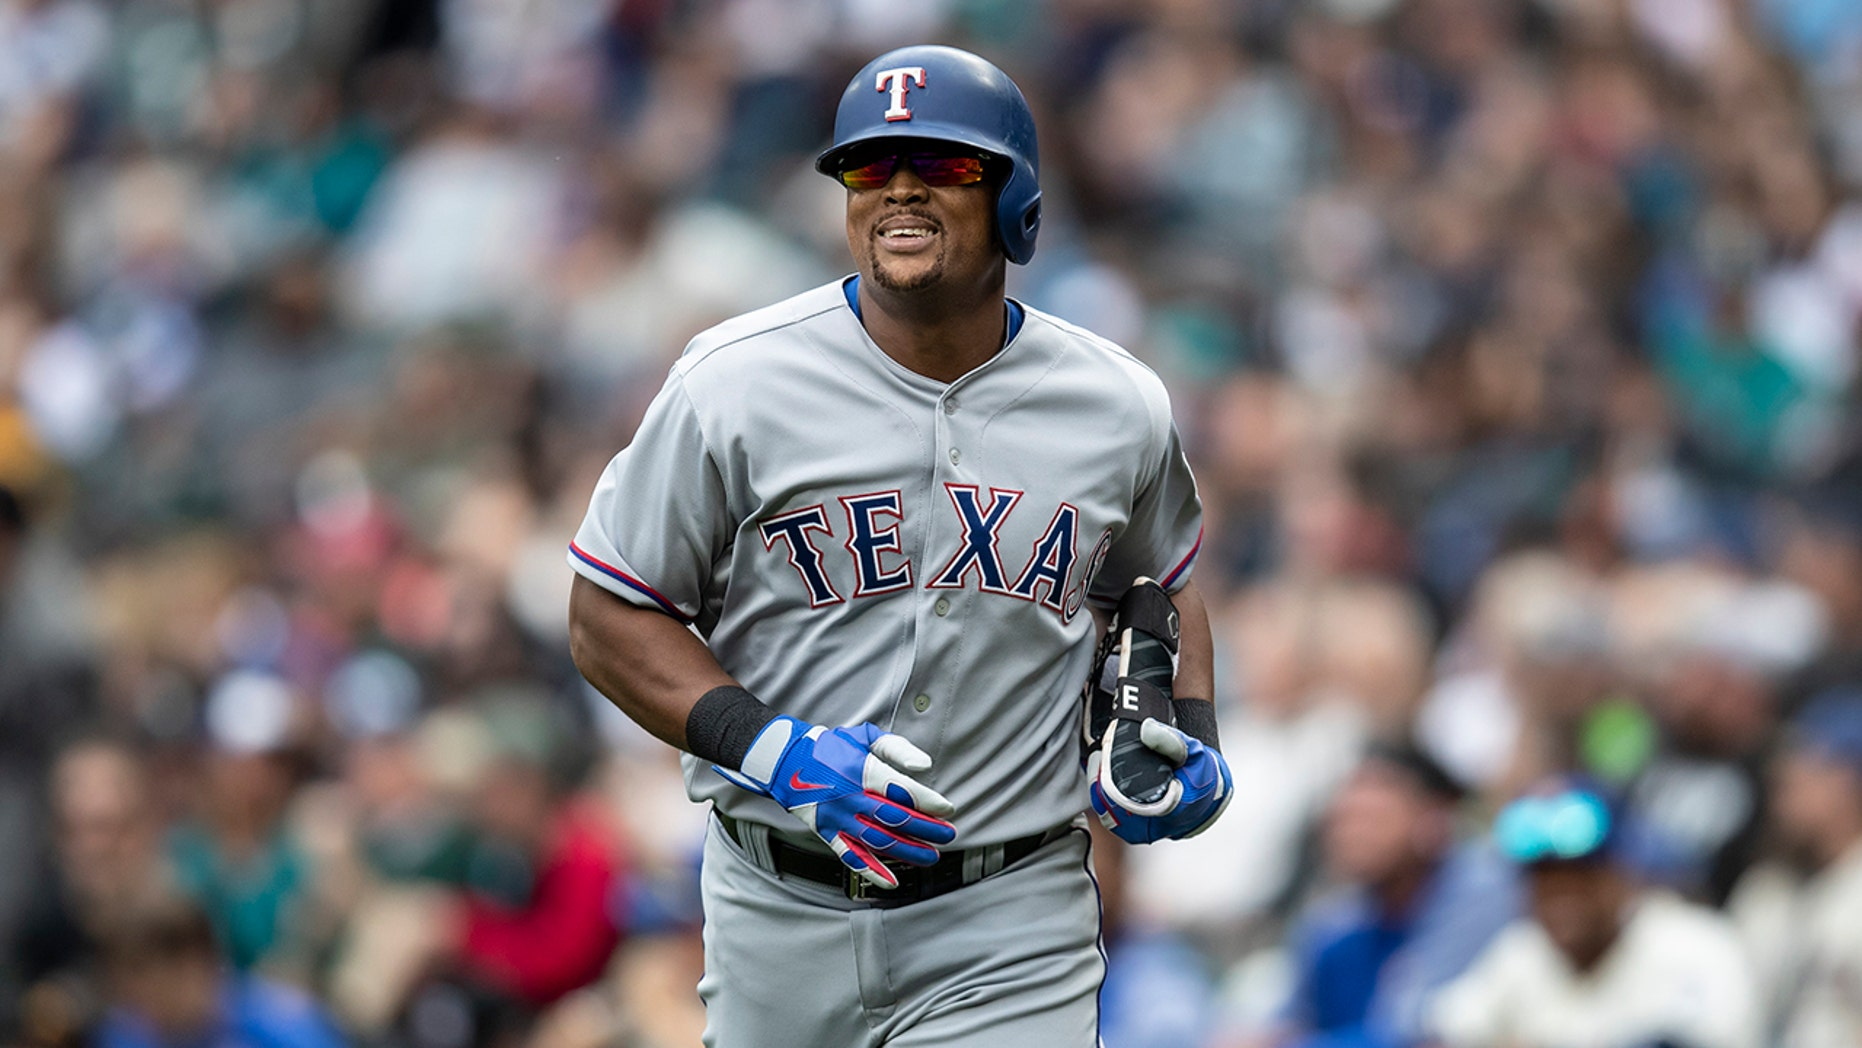 Adrian Beltre, 21-year Major League Baseball veteran, announces retirement